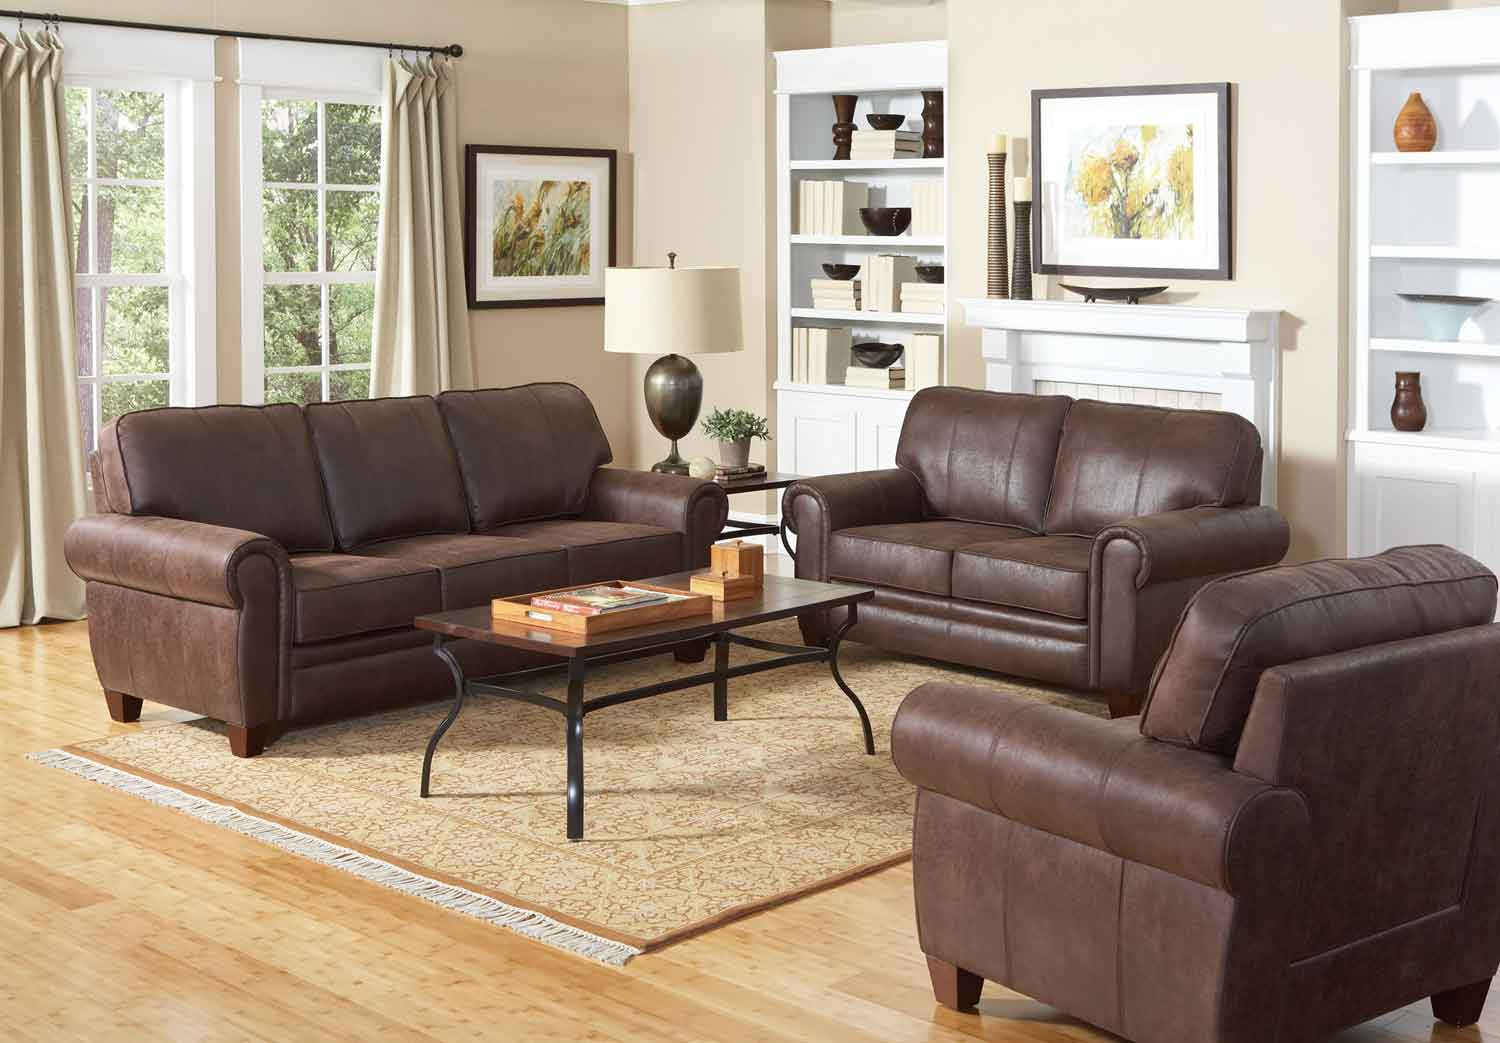 living room chair bedroom uk coaster bentley set brown 504201 livset at